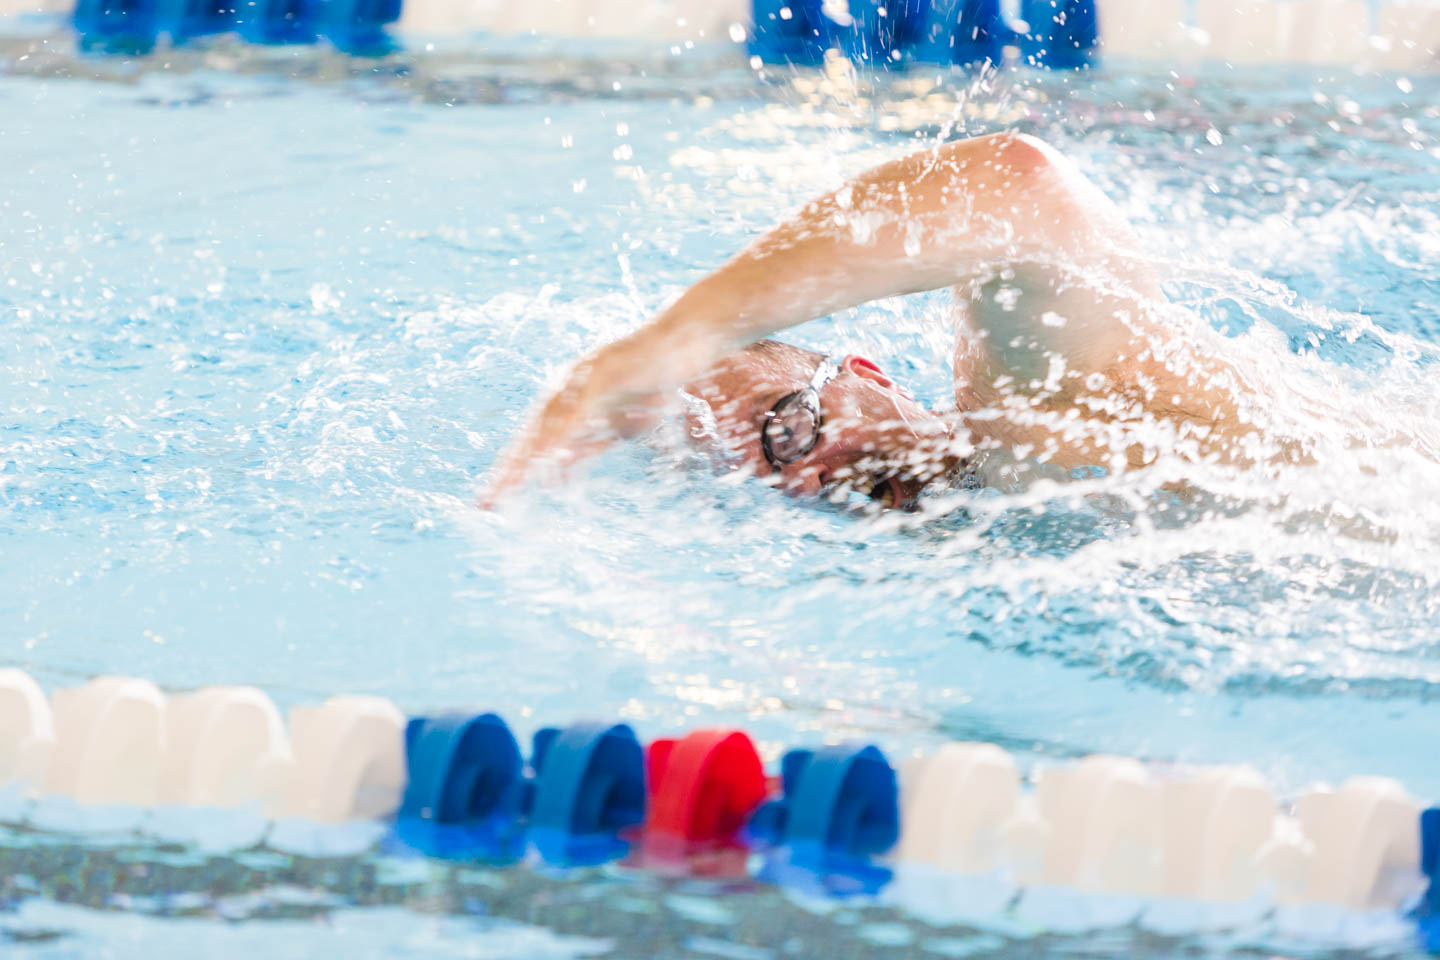 Trying to time the breaststroke for photography